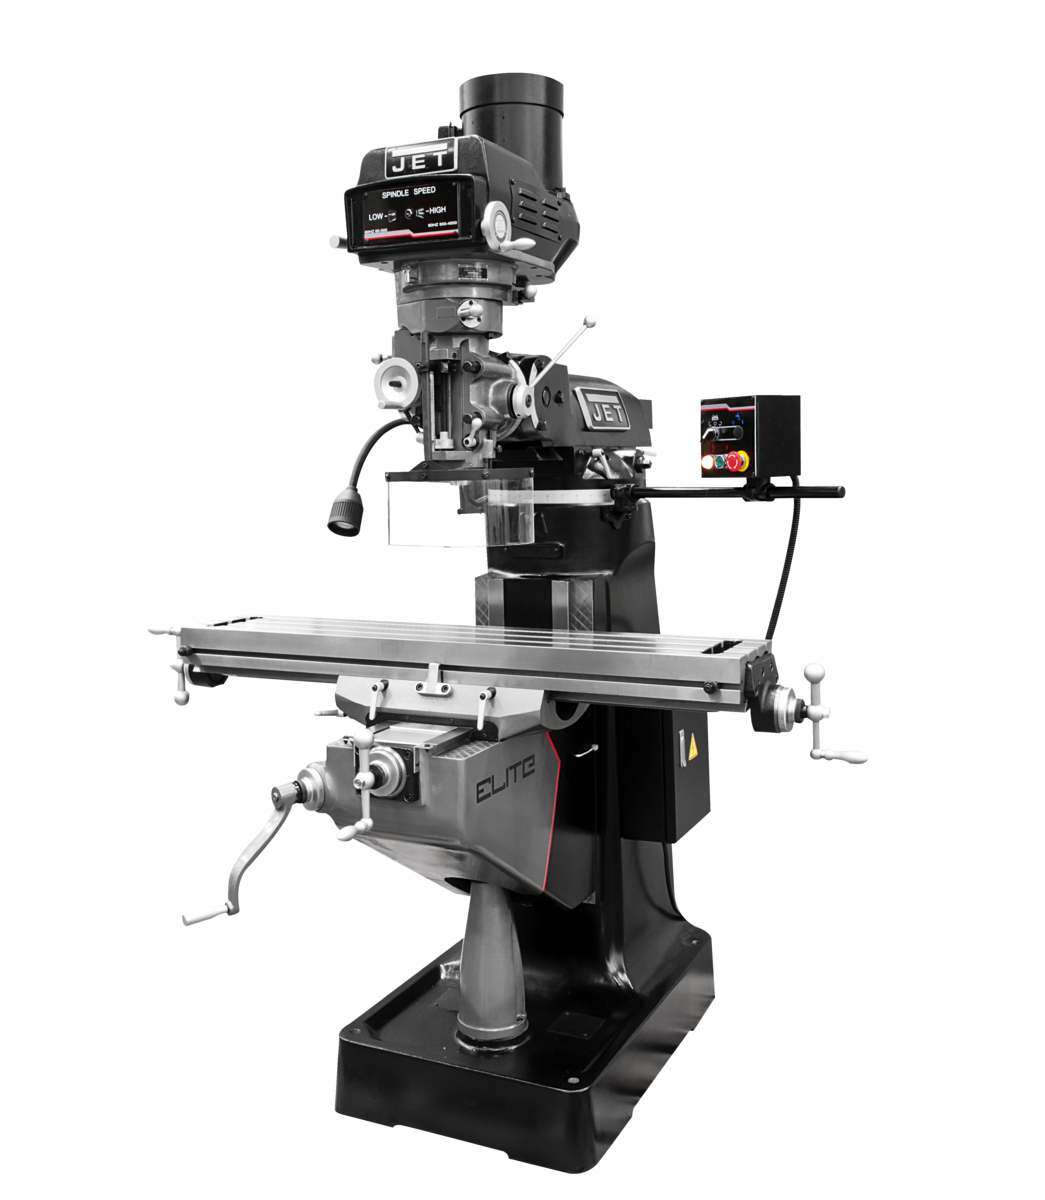 ETM-949 Mill with 2-Axis ACU-RITE 203 DRO and Servo X, Y-Axis Powerfeeds and USA Air Powered Draw Bar